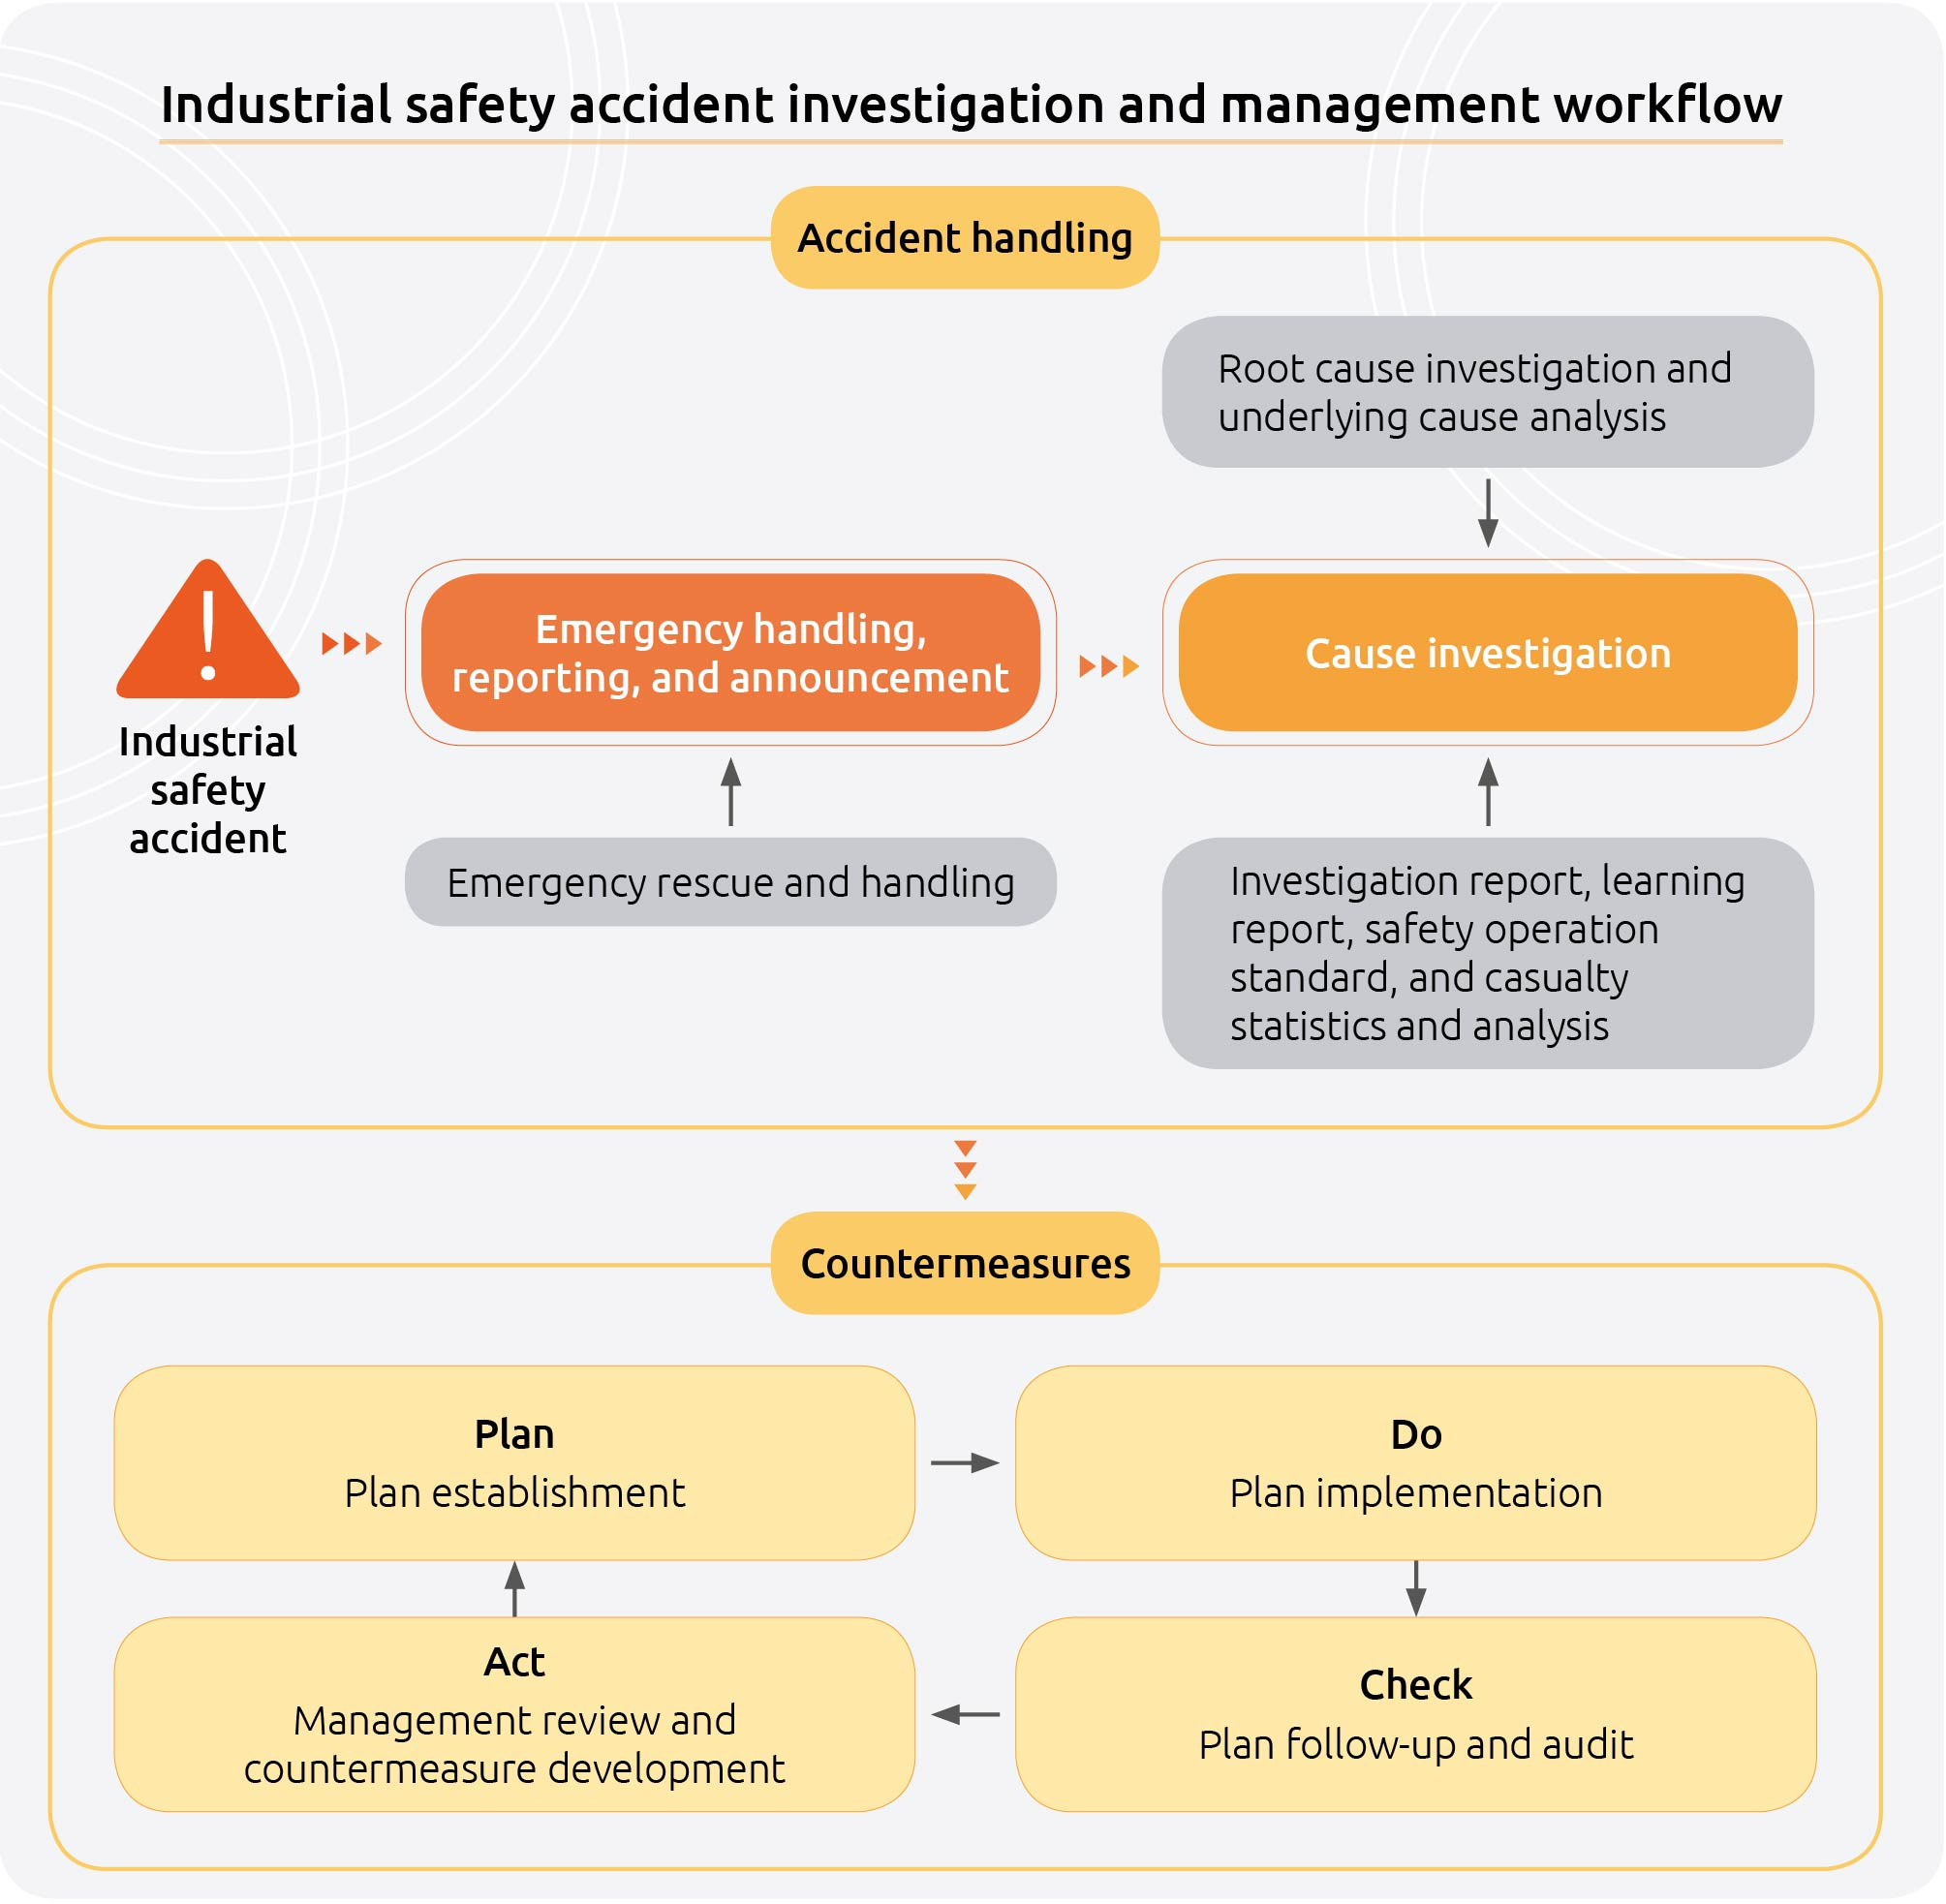 CPC Industrial safety accident investigation and management workflow